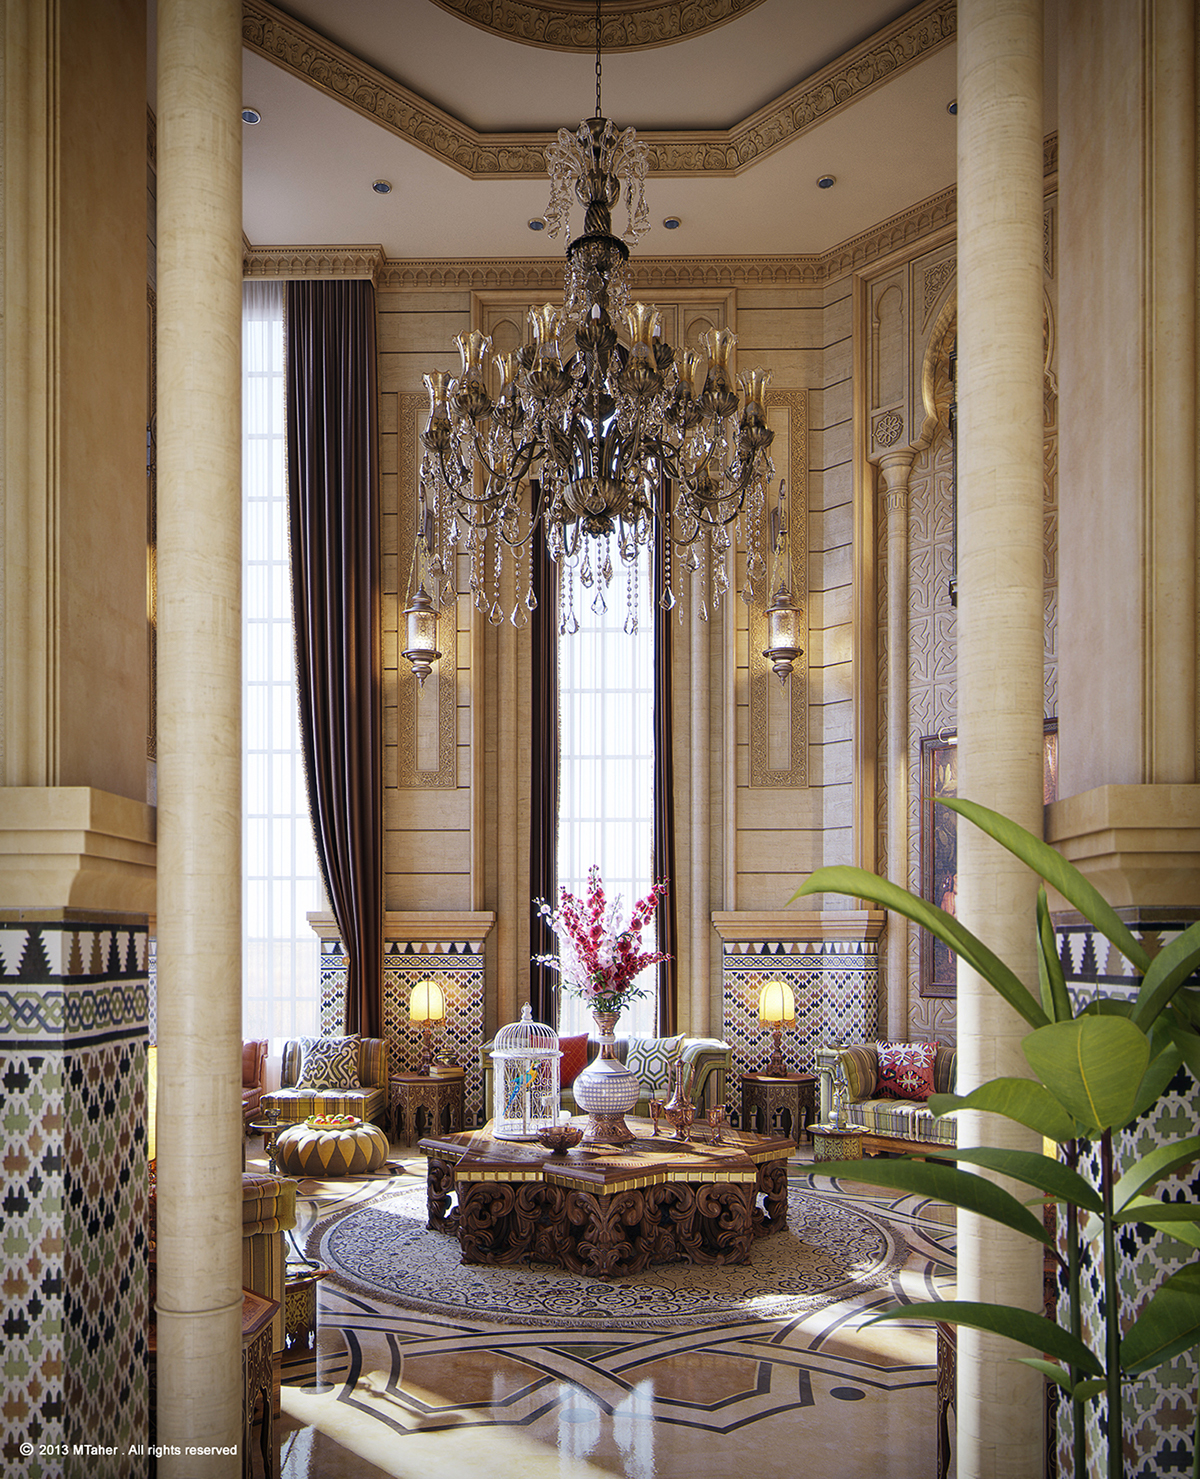 Dreamy Spaces Rendered By Muhammad Taher: Moroccan Majlis On Behance